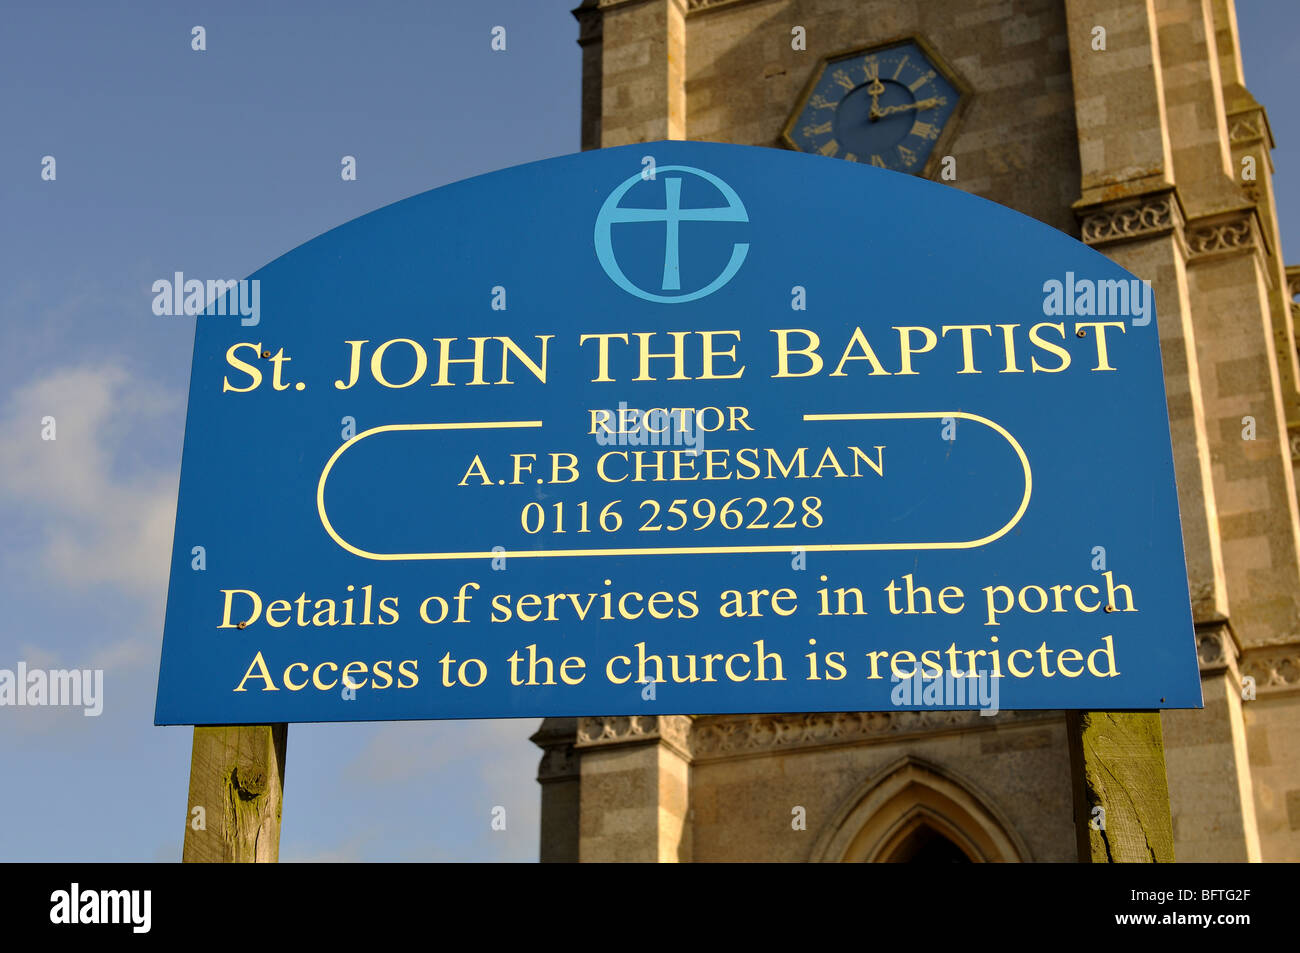 Sign of St. John the Baptist Church, King`s Norton, Leicestershire, England, UK - Stock Image